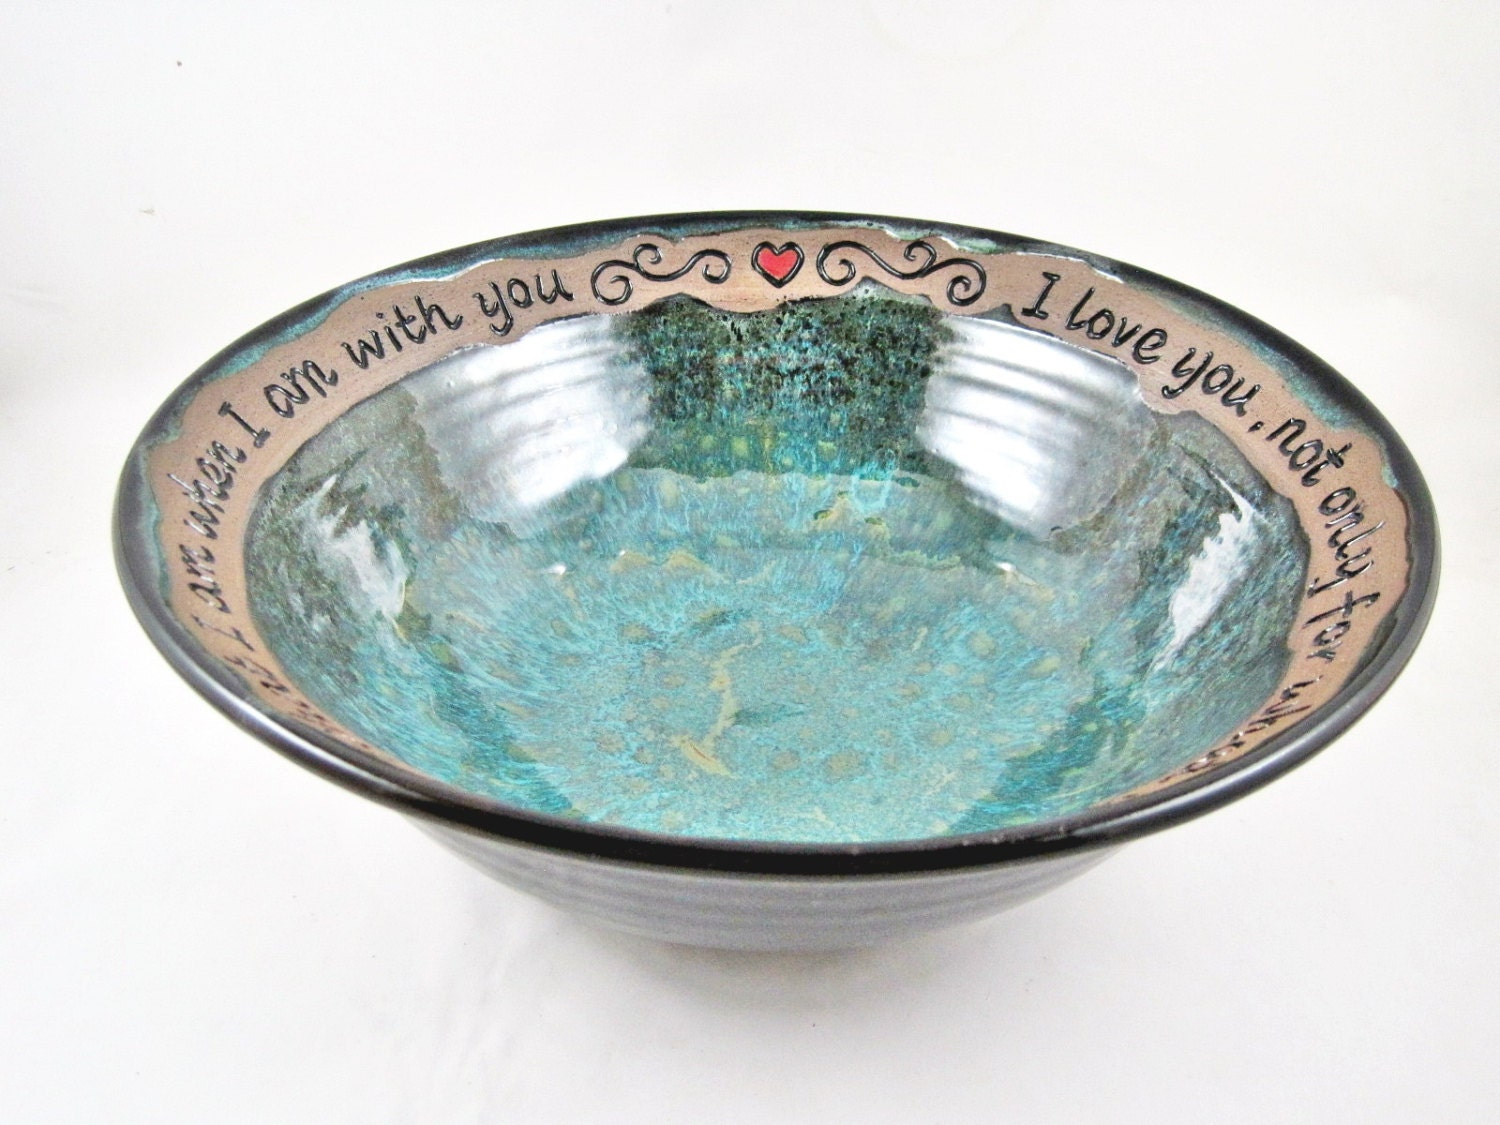 9th Anniversary Pottery For Wedding: Pottery 9th Anniversary Valentine's Day Gift By